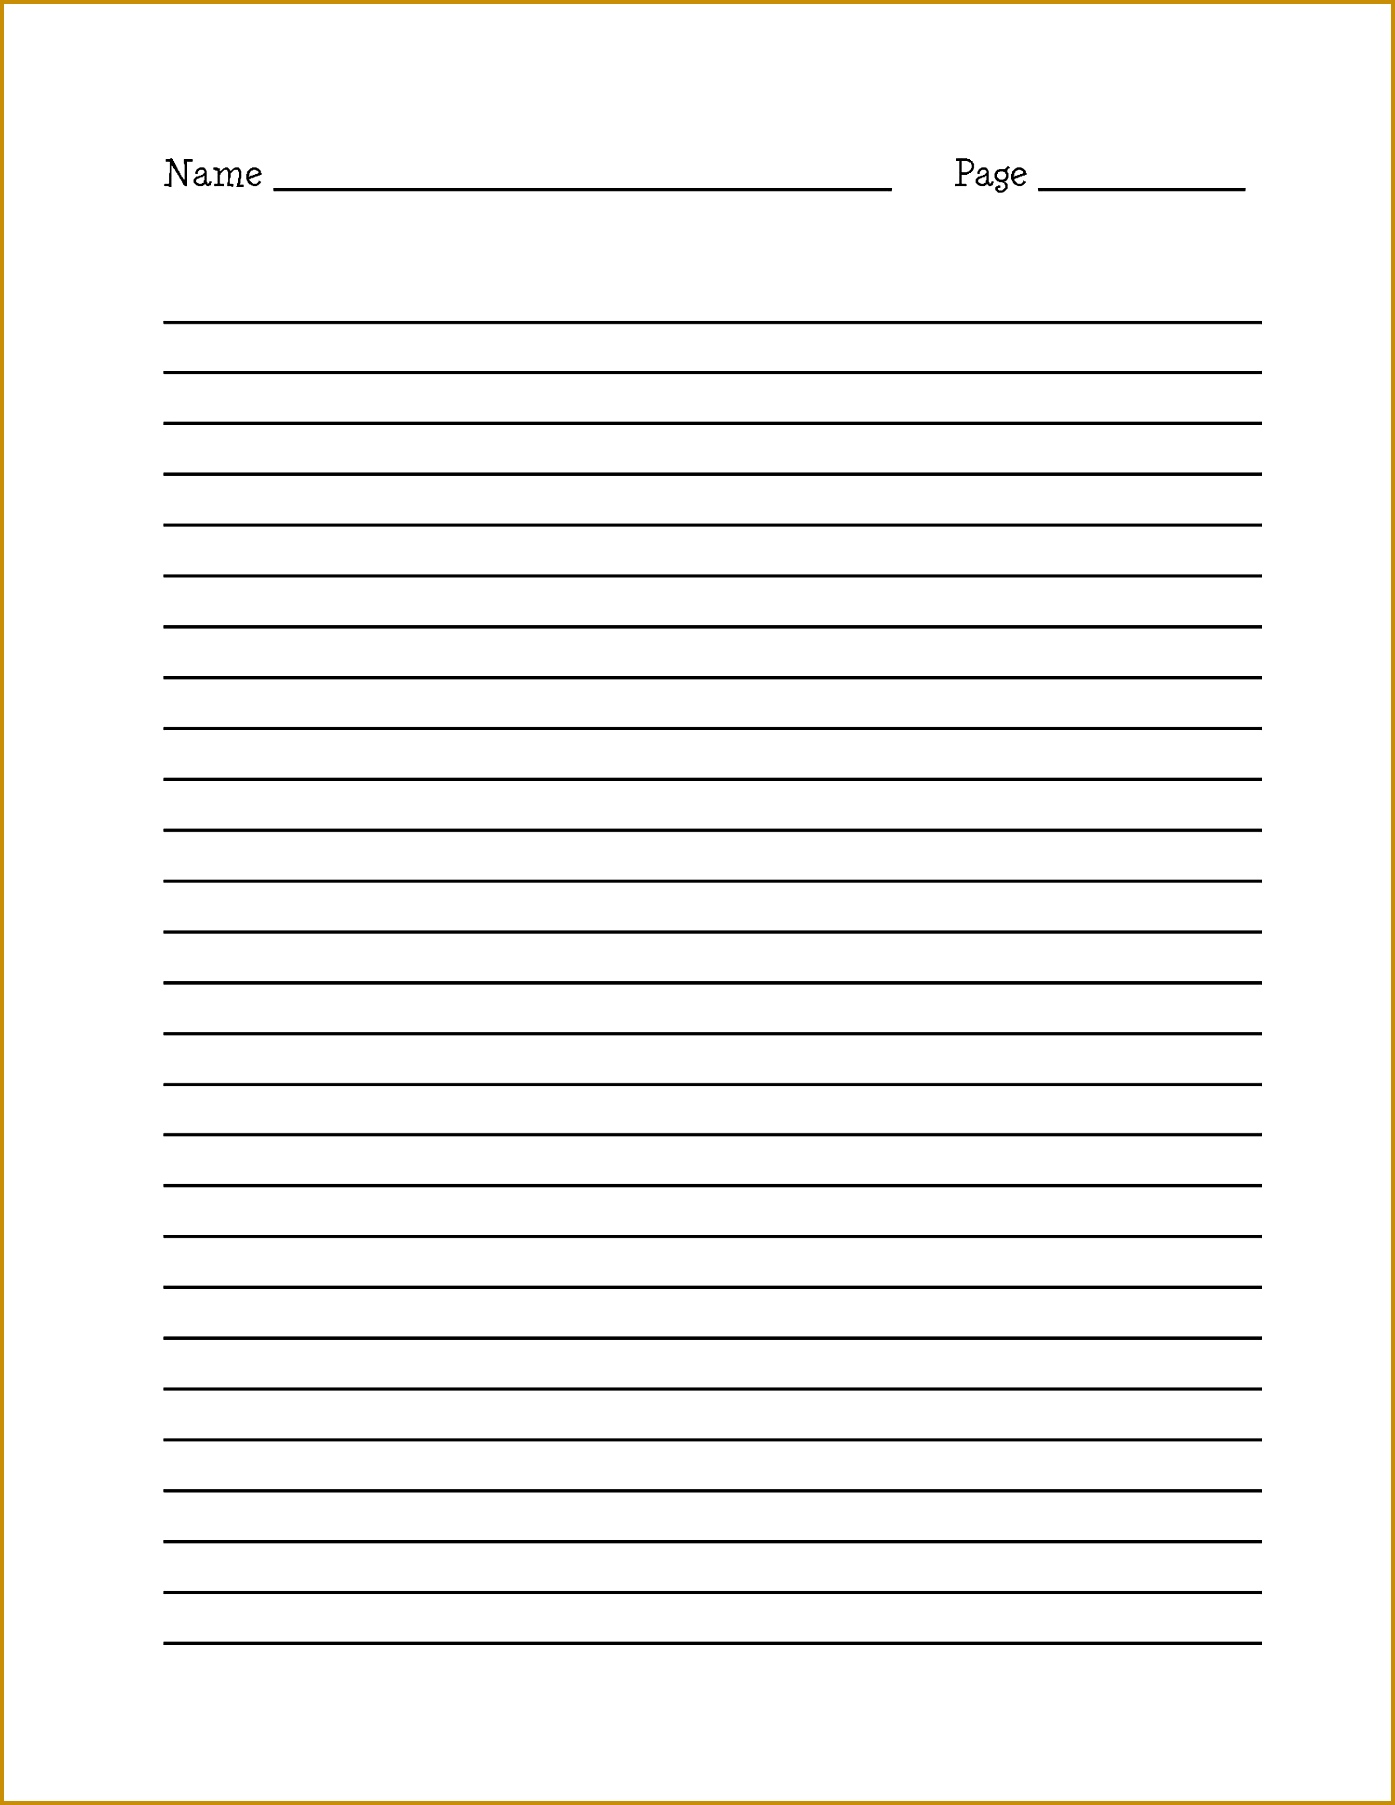 7 Lined Notebook Paper Template Word FabTemplatez FabTemplatez Lined  Notebook Paper Template Word 09069 Lined Paper For Writing For Cute Writing  Paper Dear ...  Notebook Template For Word